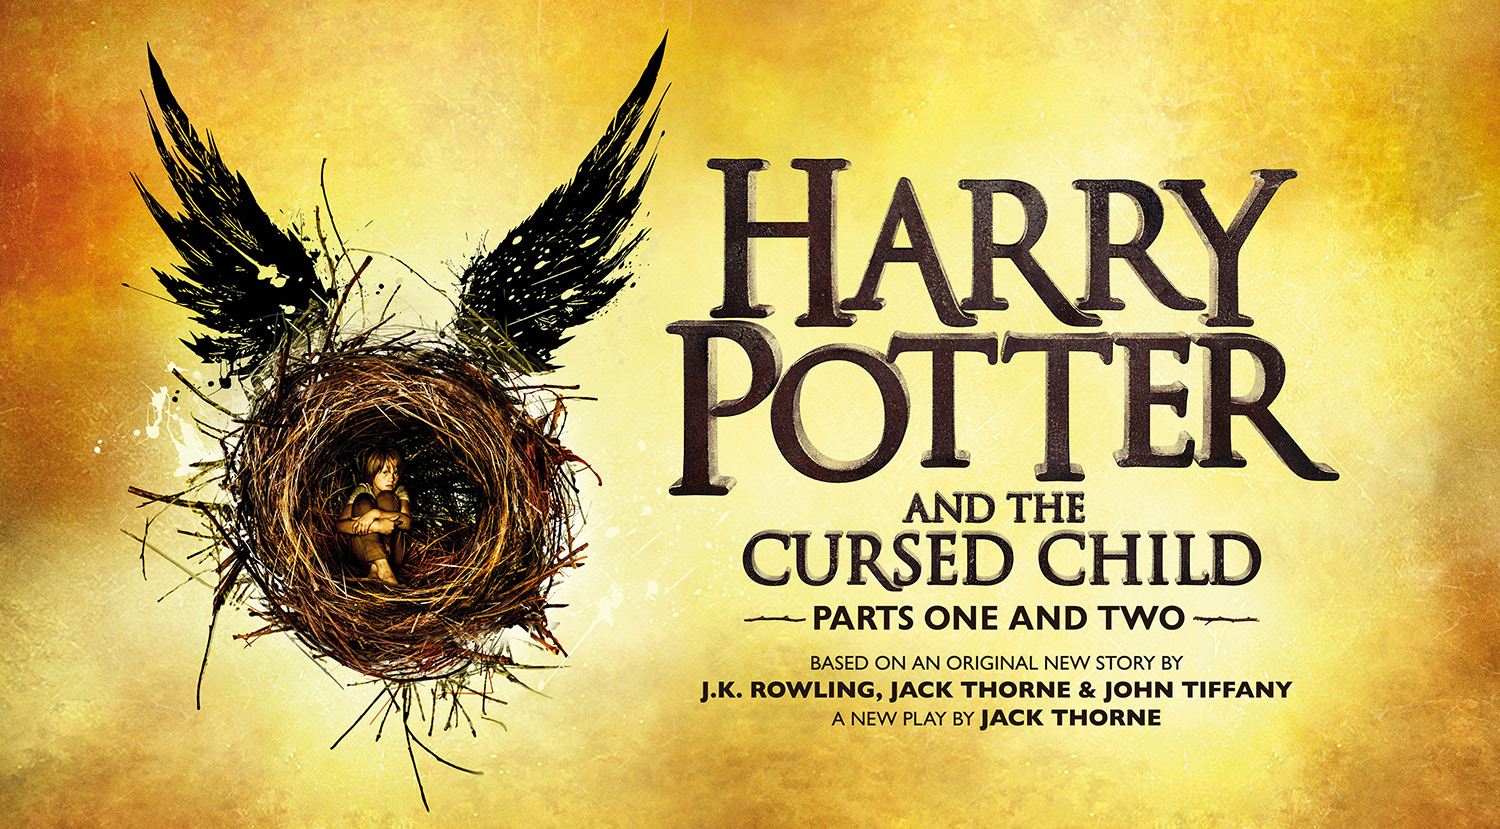 'Cursed Child' artwork